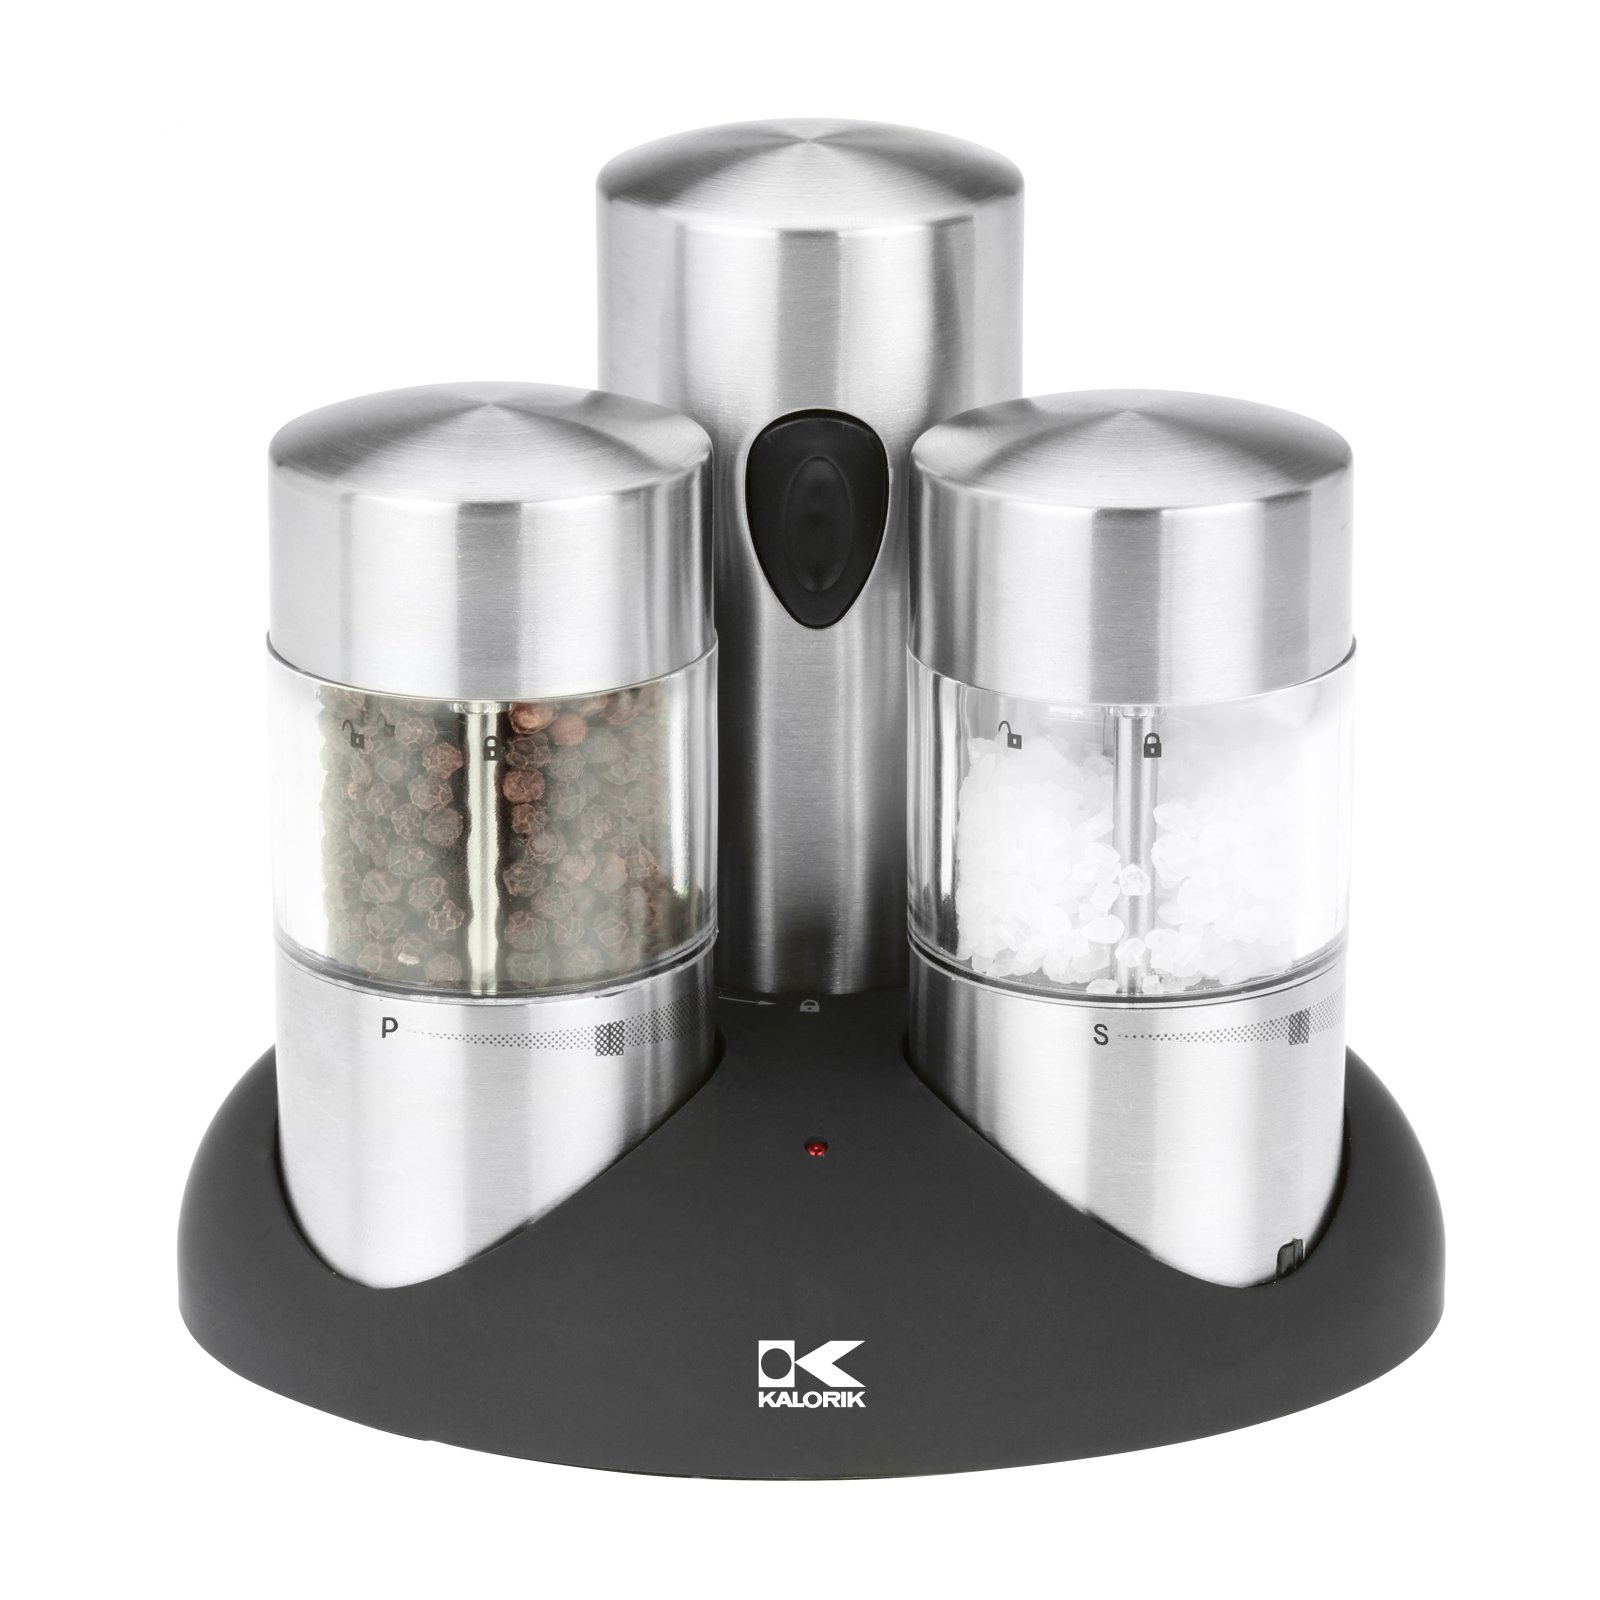 Kalorik Rechargeable Electric Stainless Steel Salt and Pepper Grinder Set